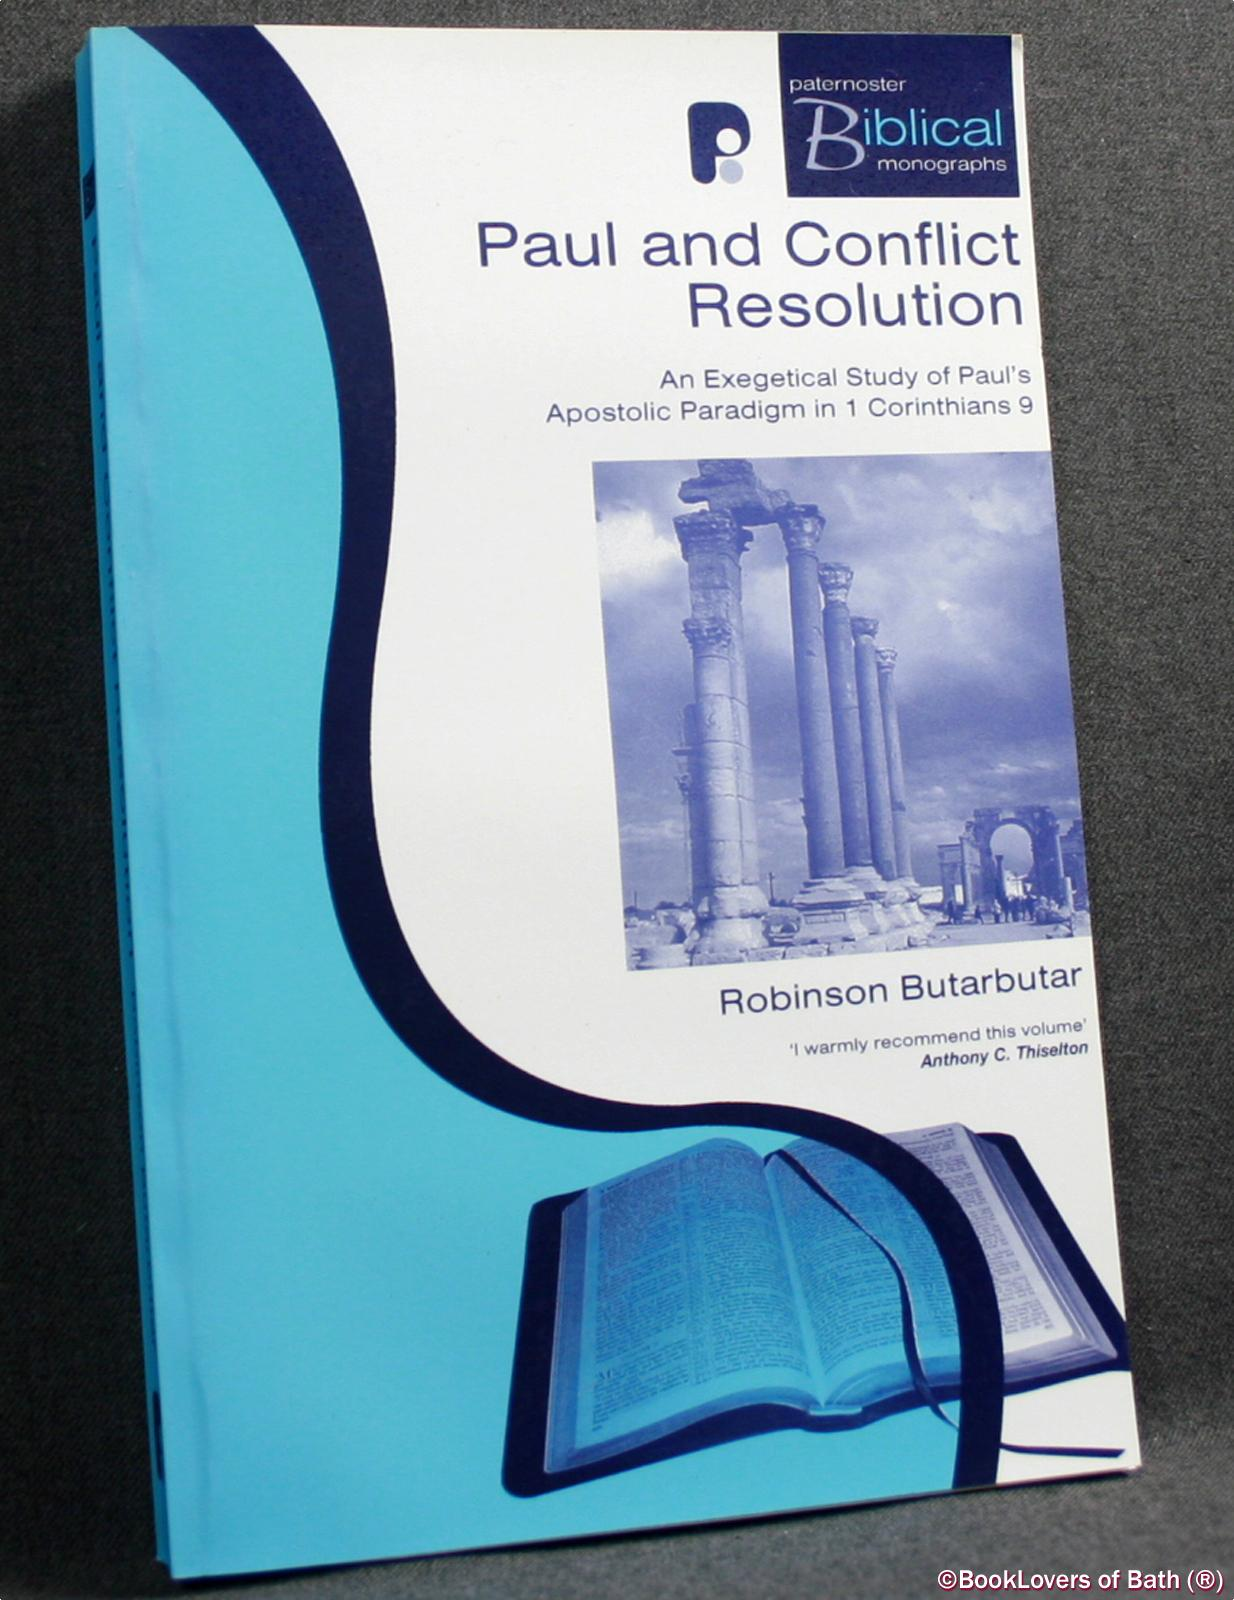 Paul and Conflict Resolution: An Exegetical Study of Paul's Apostolic Paradigm in 1 Corinthians 9 - Robinson Butarbutar